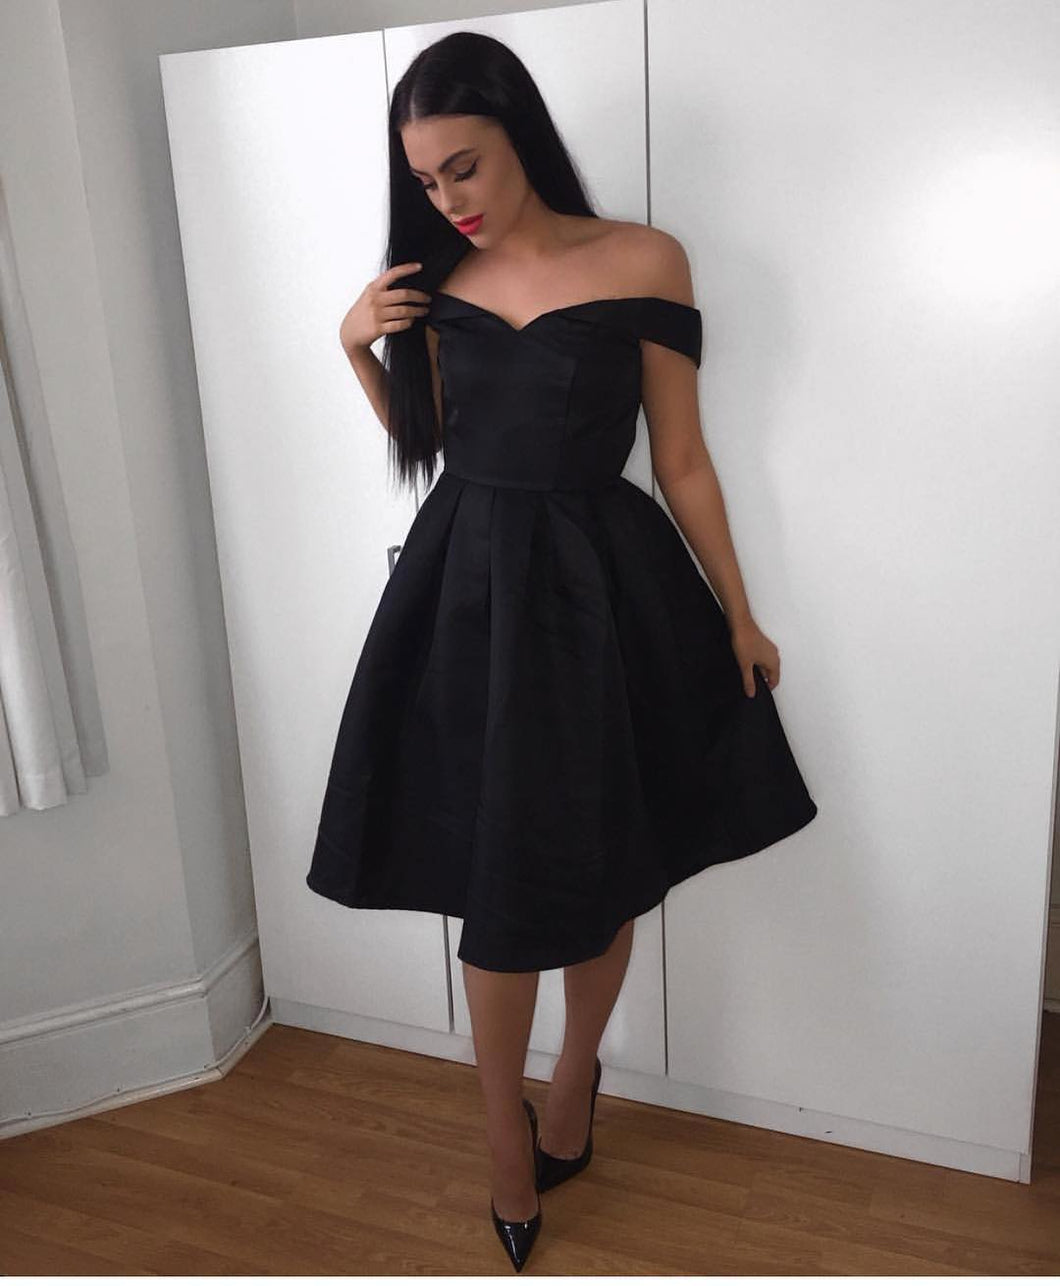 Black Satin Off Shoulder Short Bridesmaid Dresses Simple Party Gowns